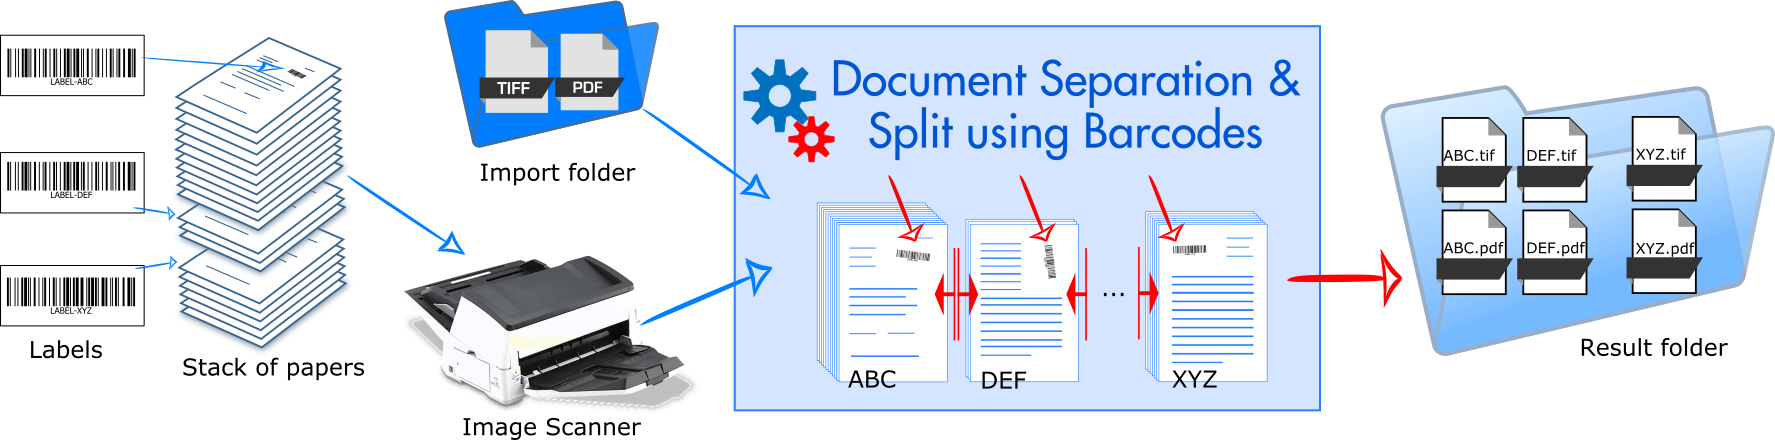 Scanned document image separation and split using barcodes